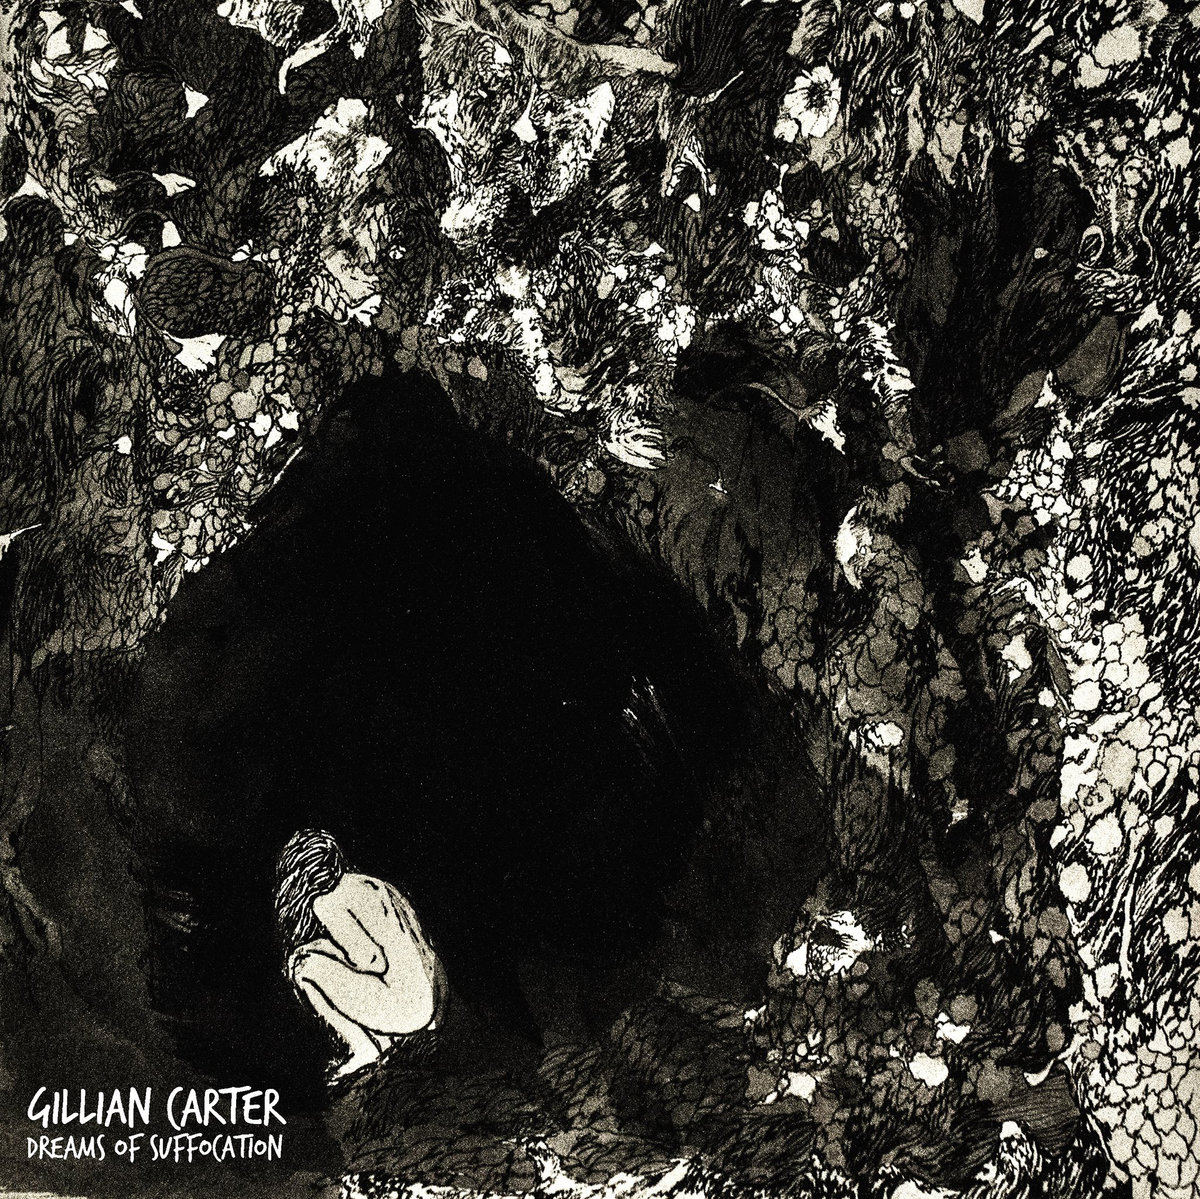 2016. Cover design for Gillian Carter - Dreams of Suffocation. Released through Skeletal Lightning.